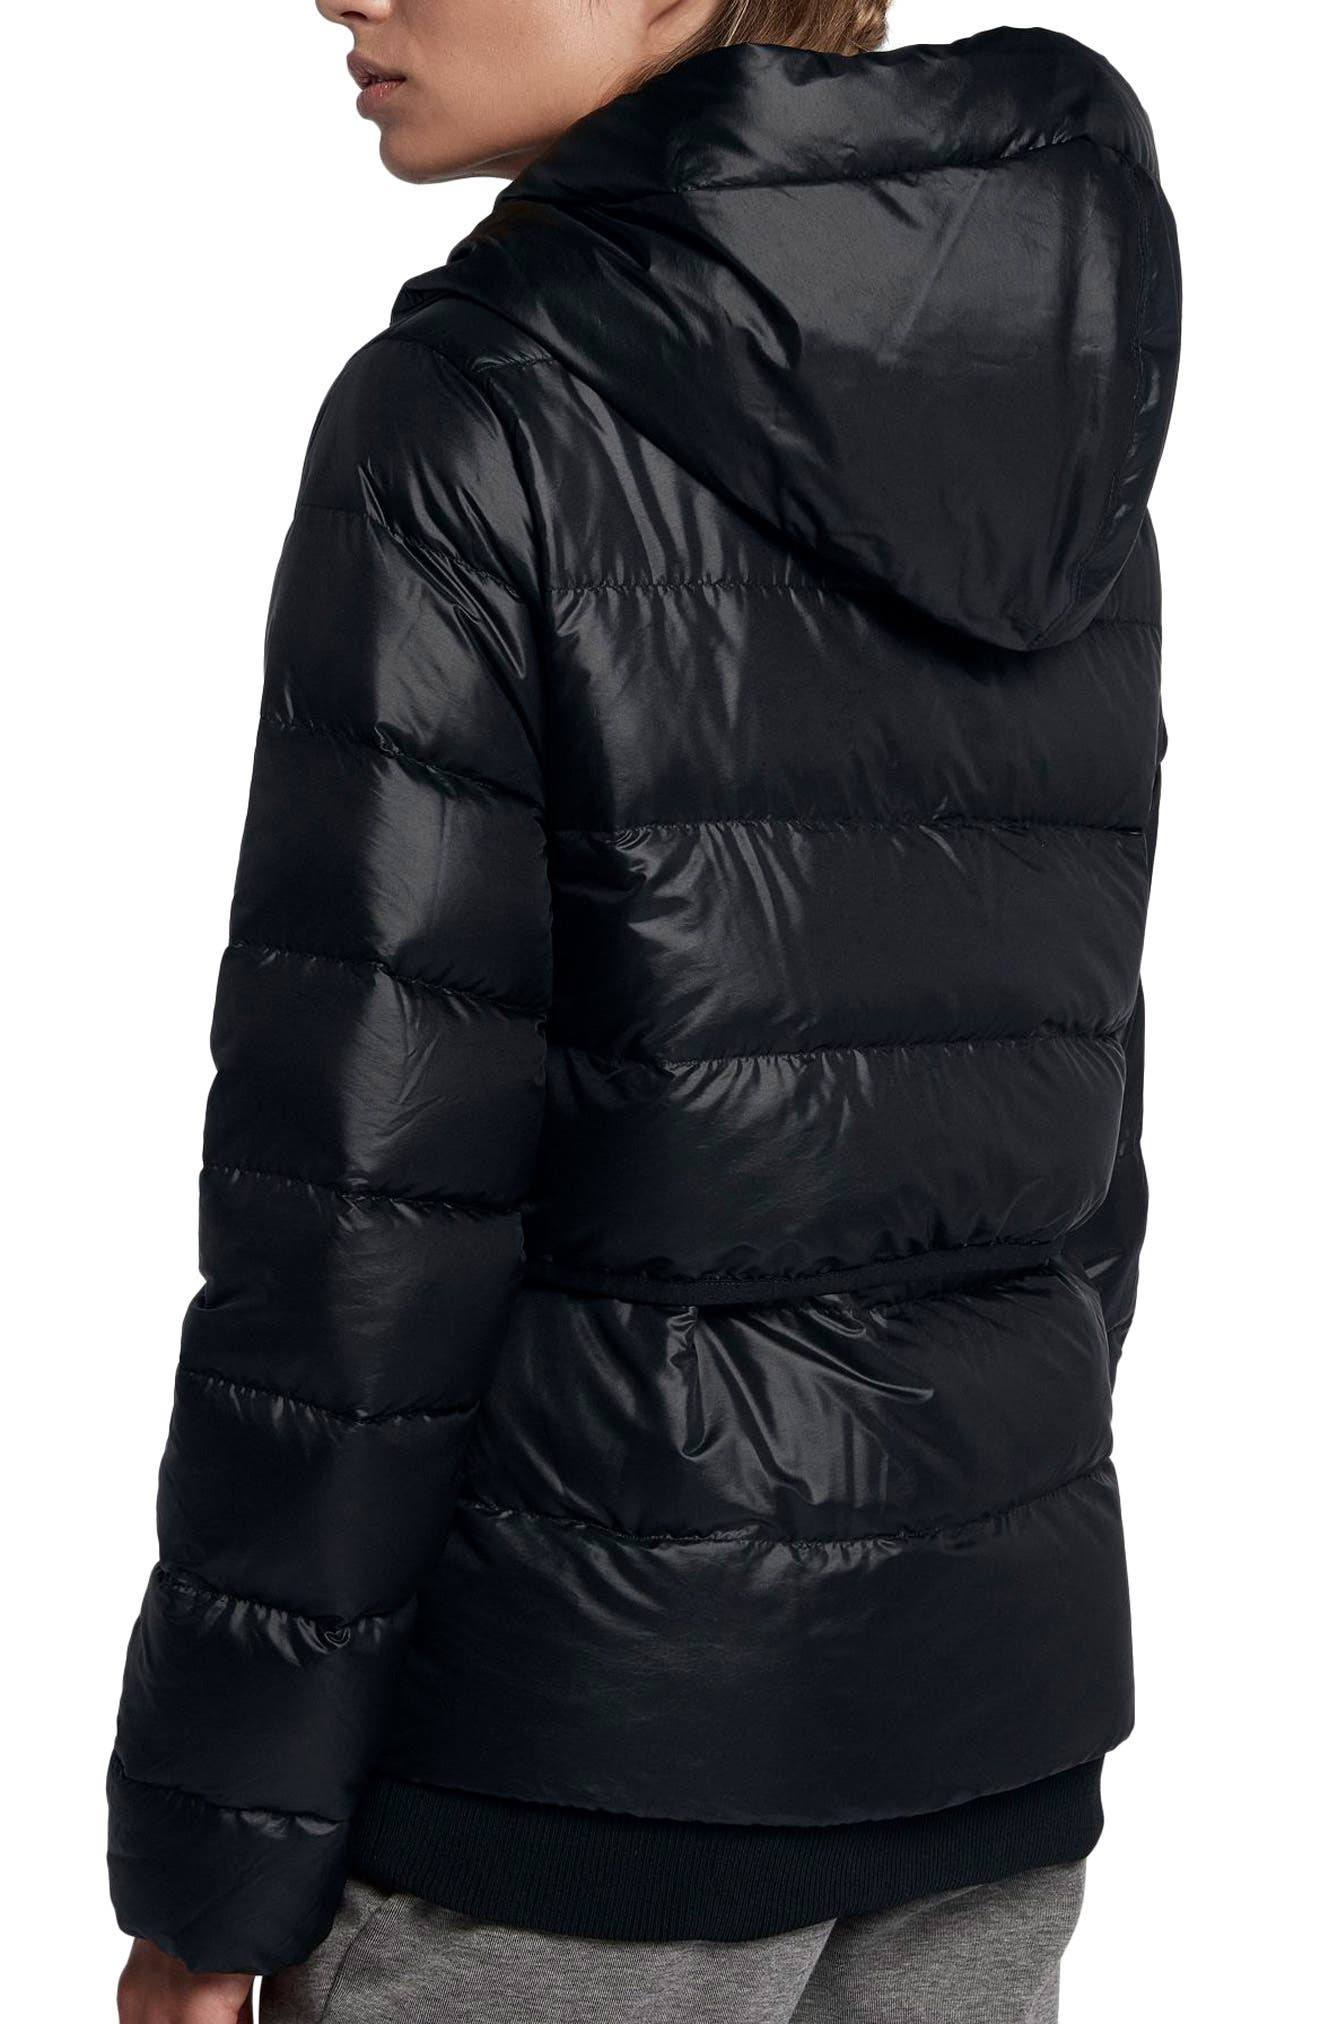 Sportswear Women's Hooded Down Jacket,                             Alternate thumbnail 2, color,                             010